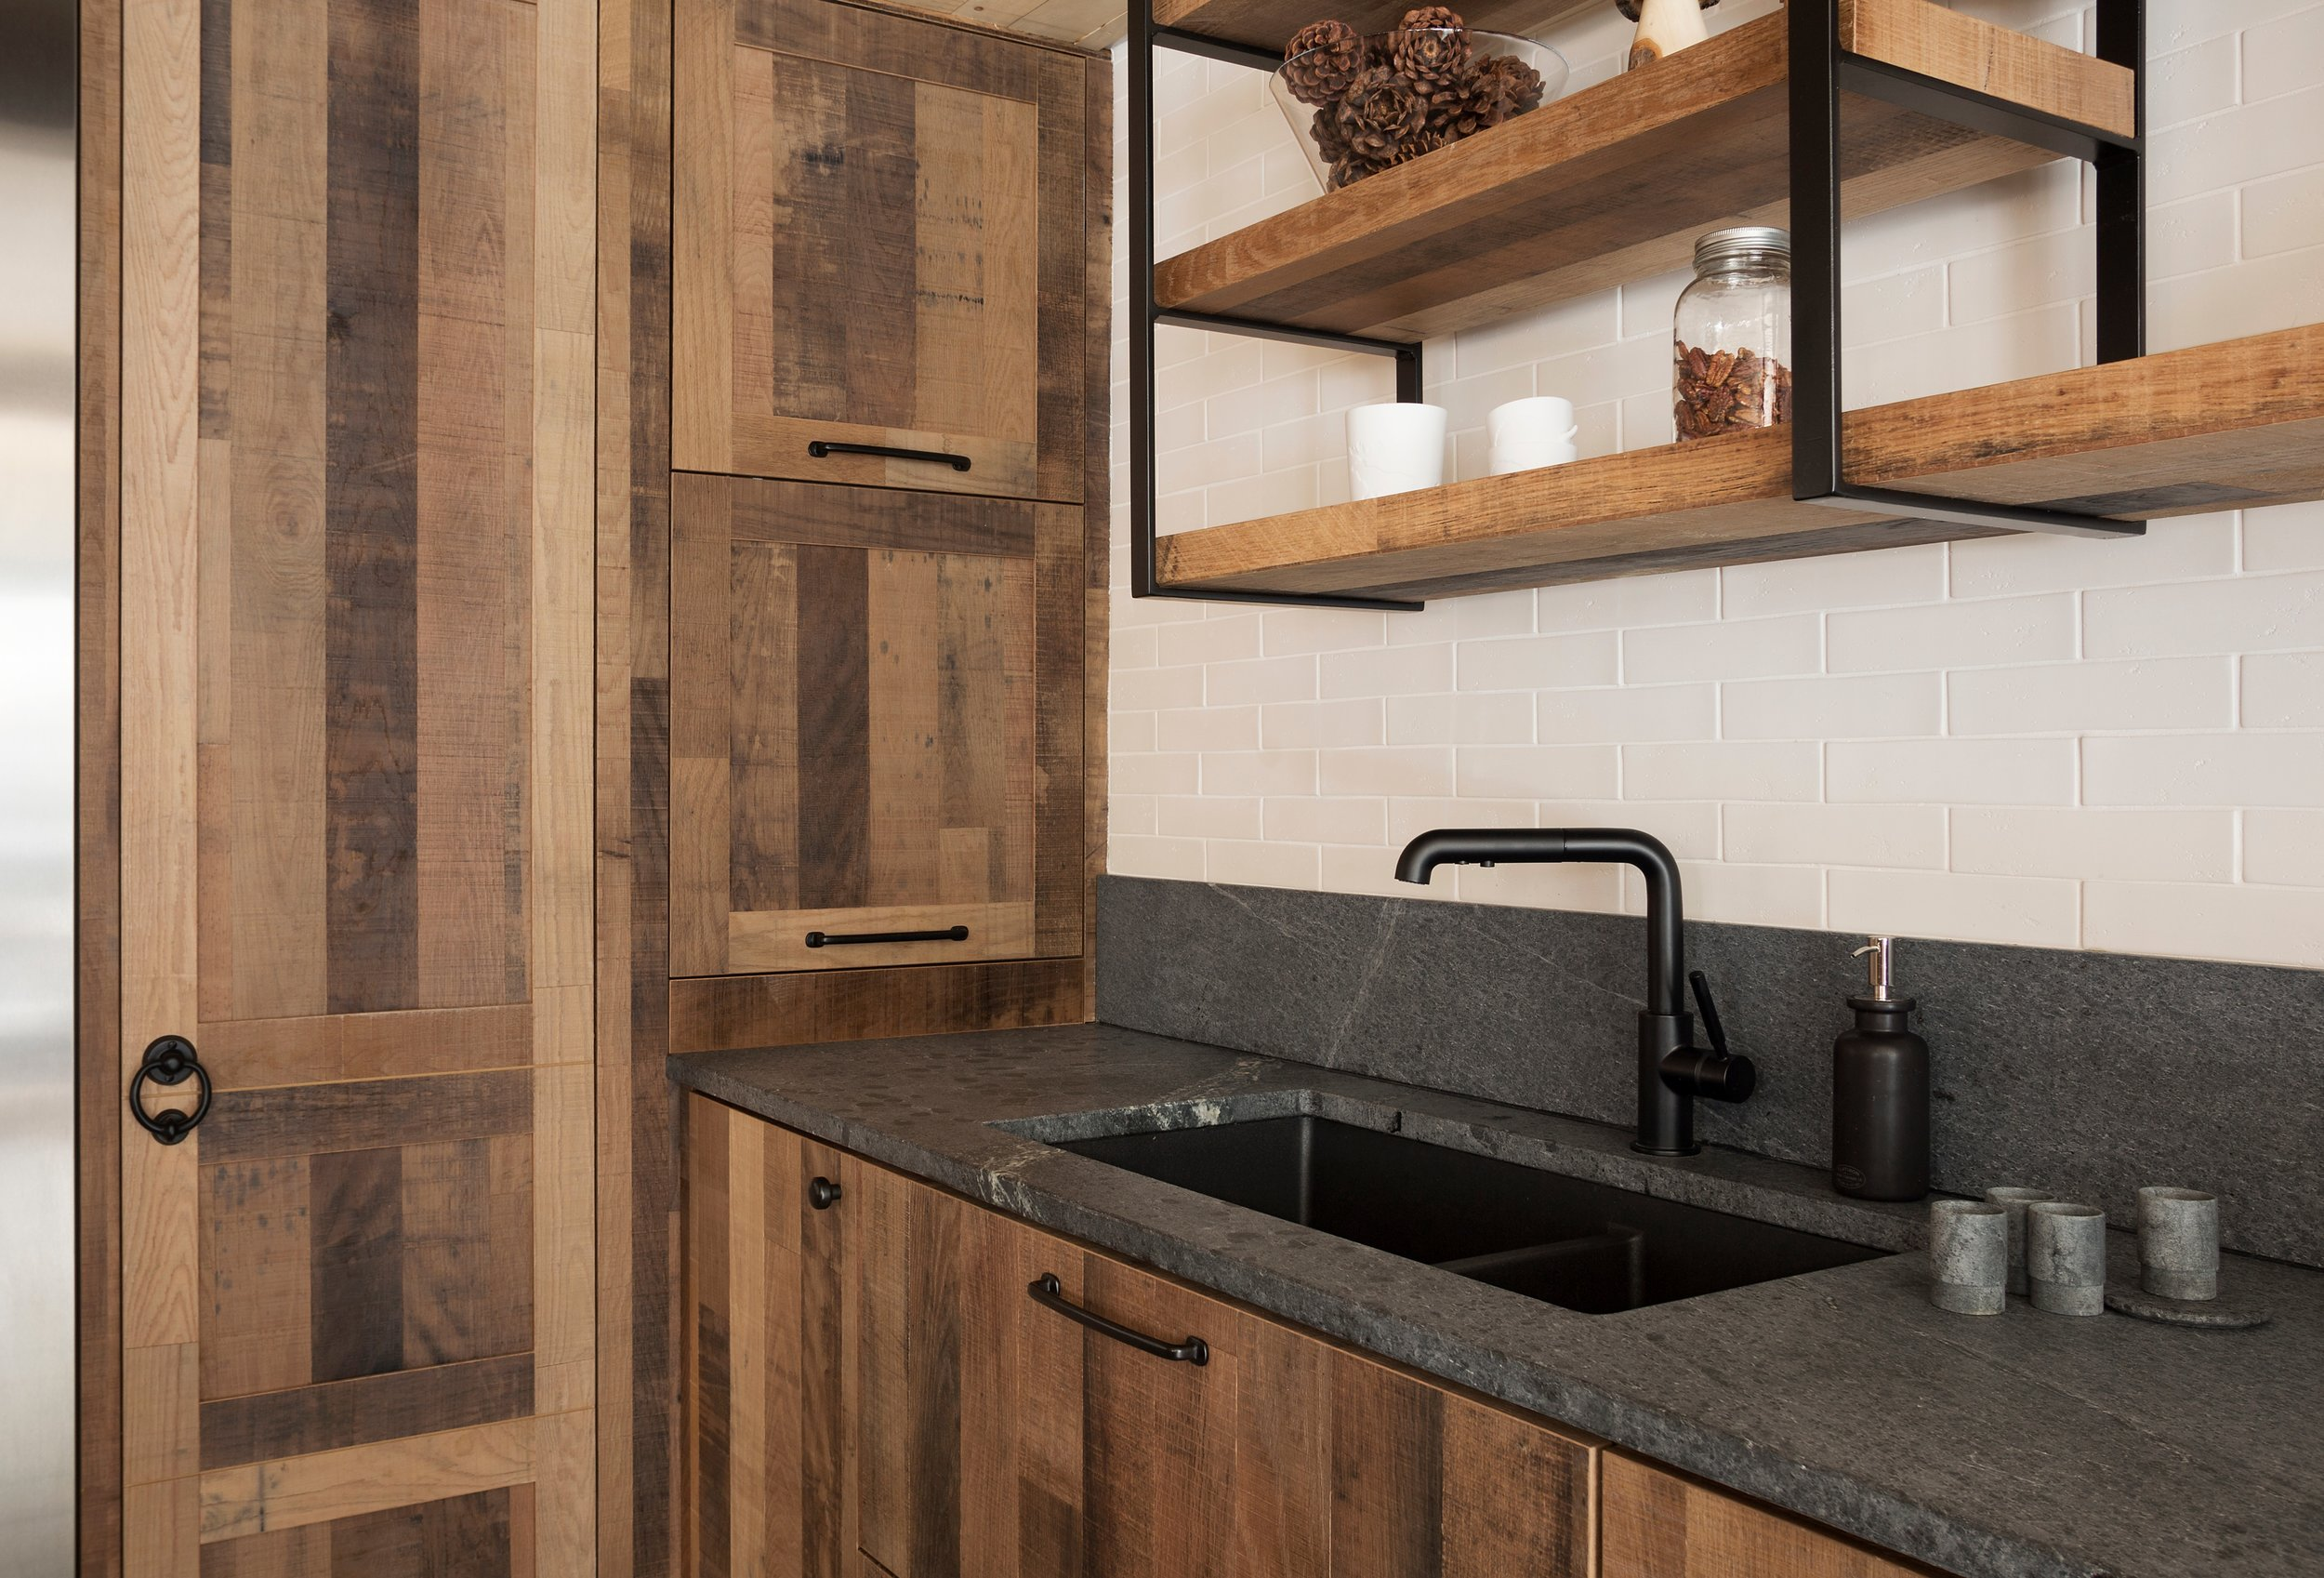 Reclaimed Wood Cabinets with Unoiled Alexandria Soapstone